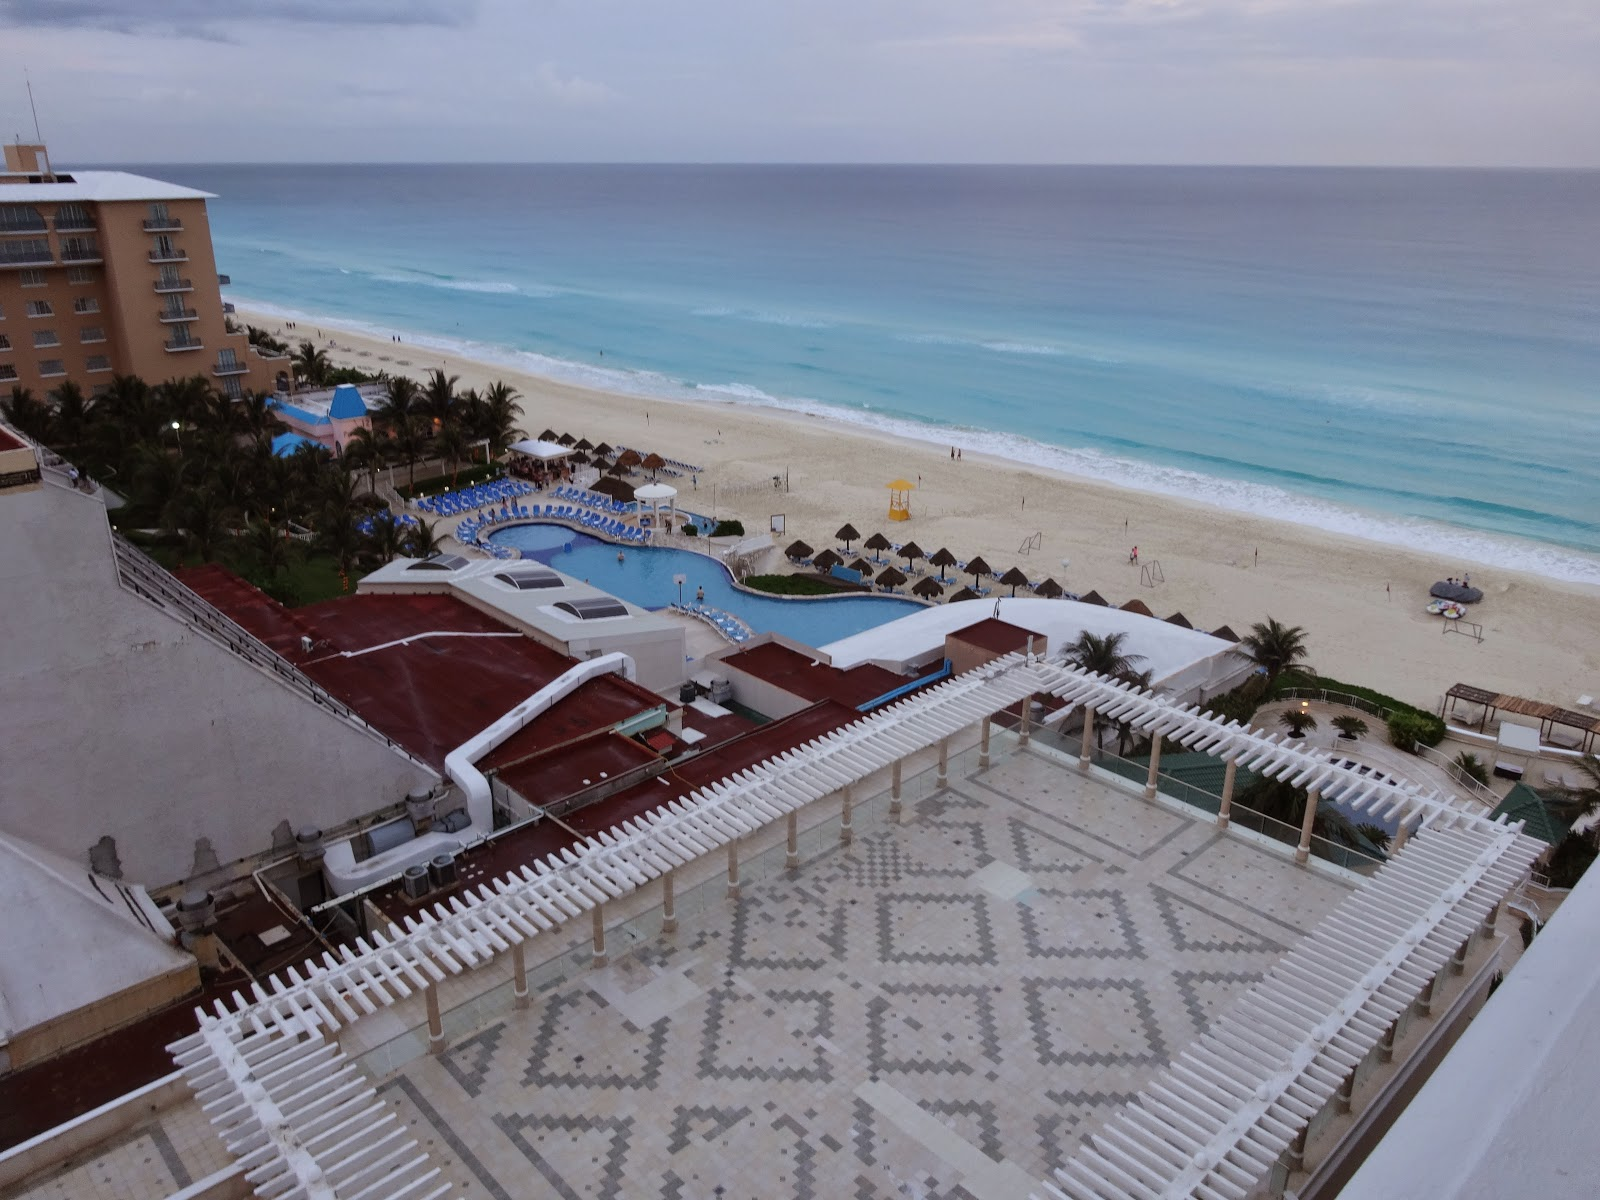 As It Was Toward S The End Of High Season We Got A Deal On Orbitz For Week At Sandos Resort An All Inclusive Holiday Destination